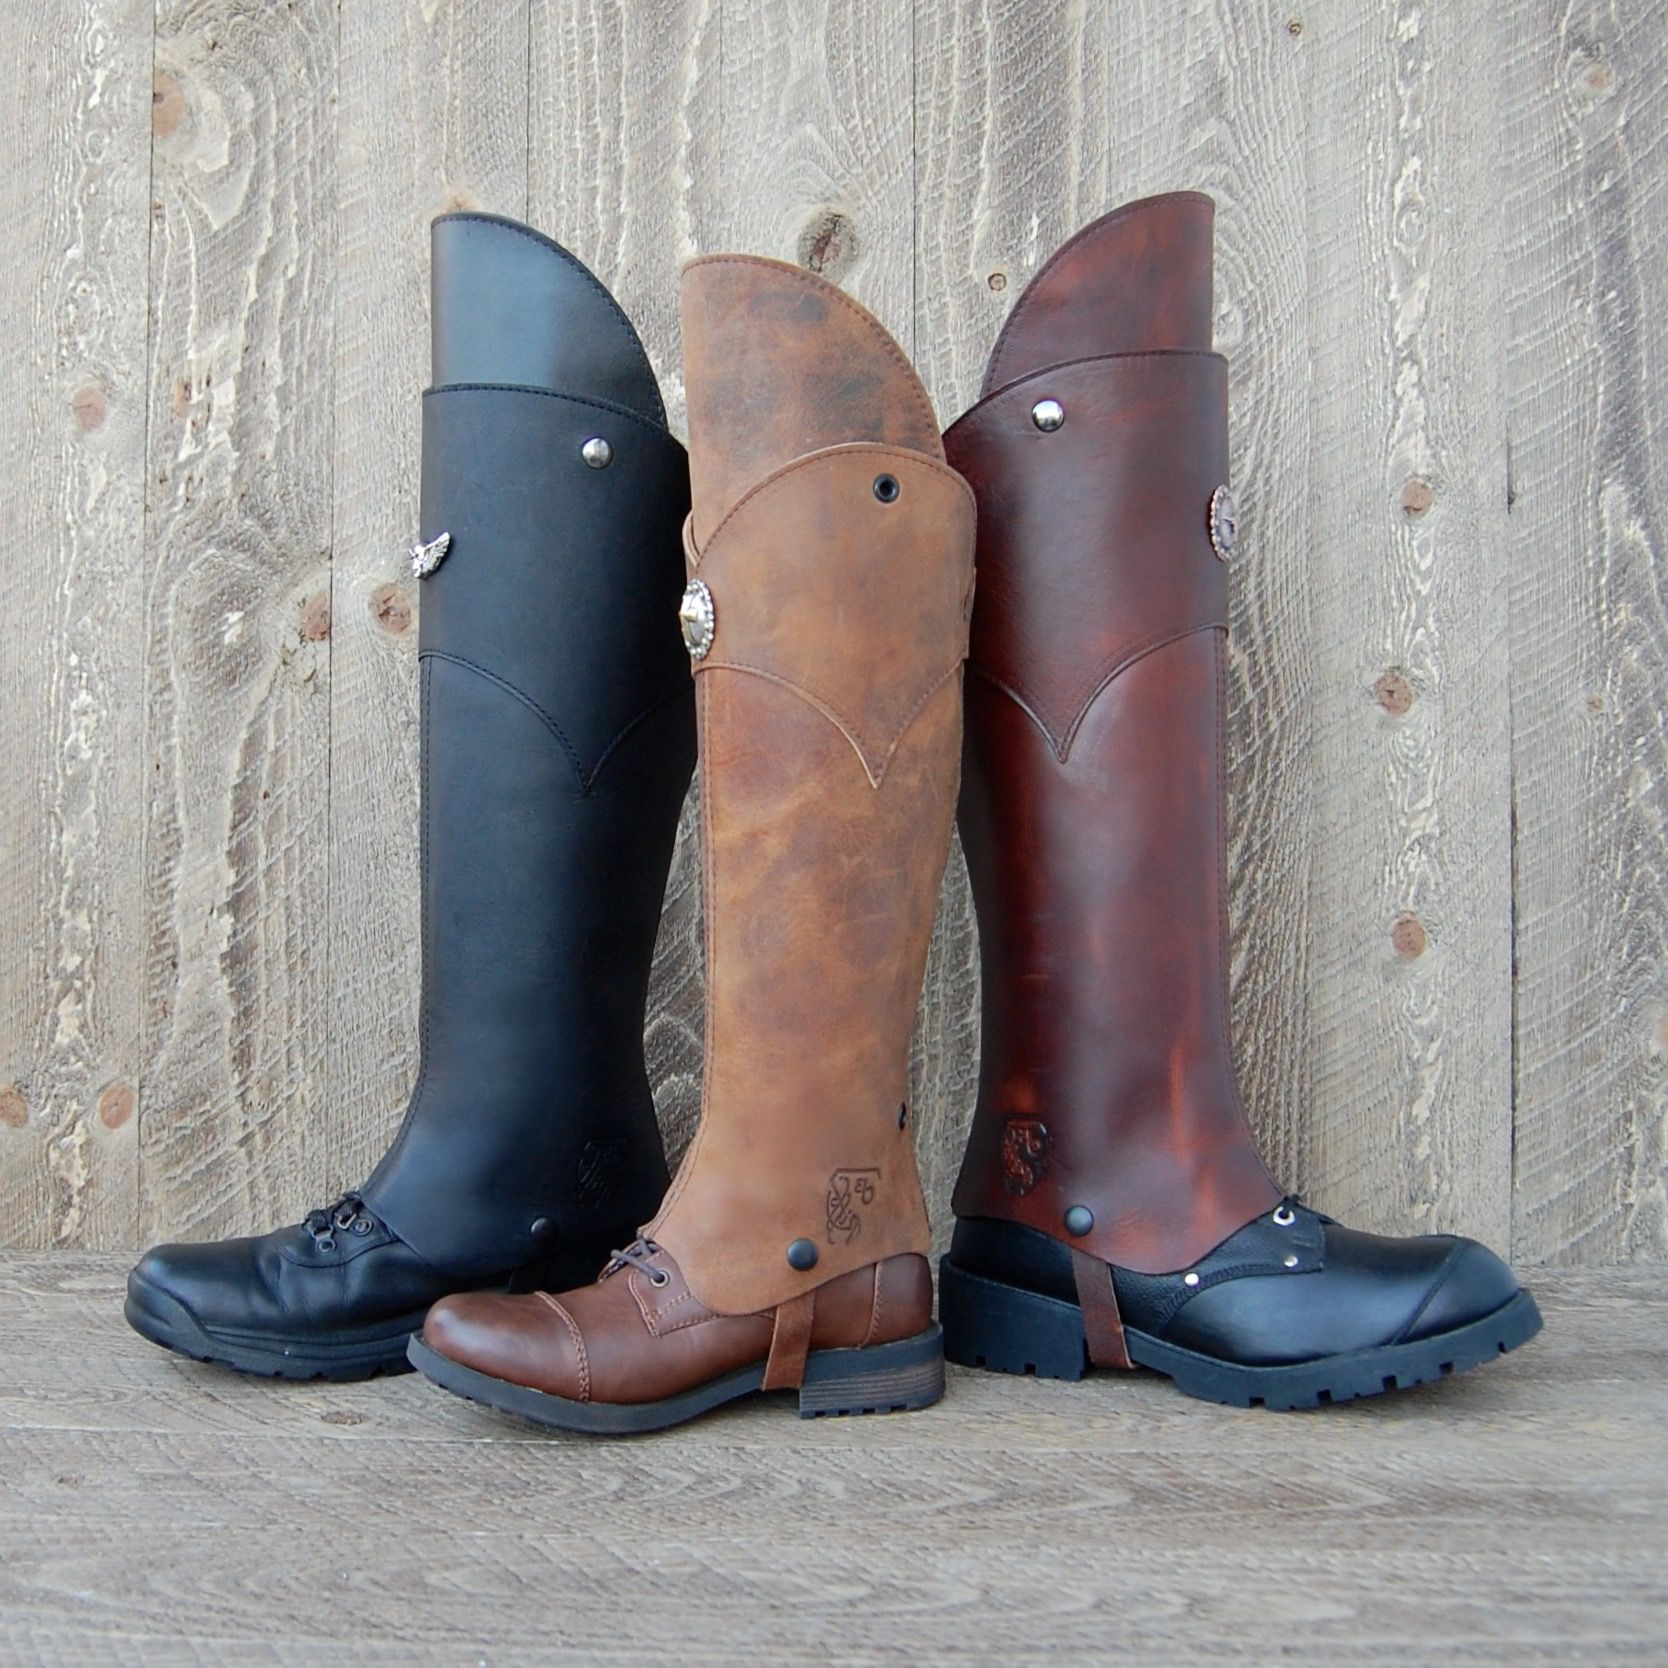 Accessories Boots Armor Boots Horse Riding Boots